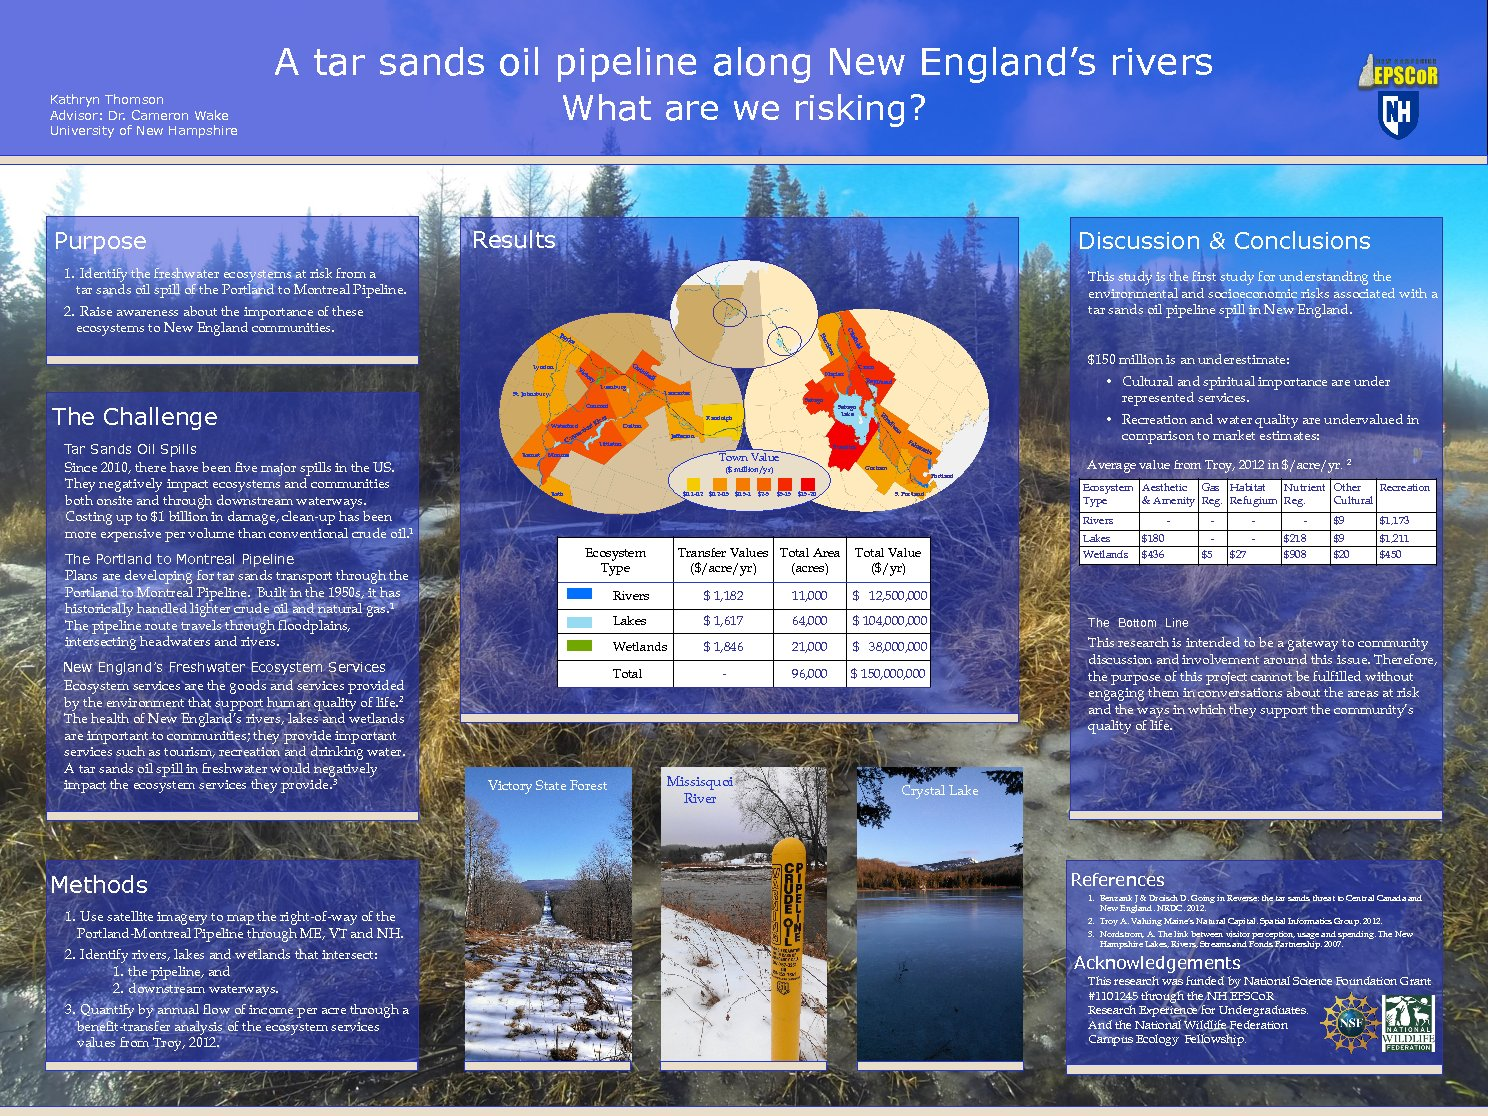 A Tar Sands Oil Pipeline Along New England's Rivers - What Are We Risking? by kpb39